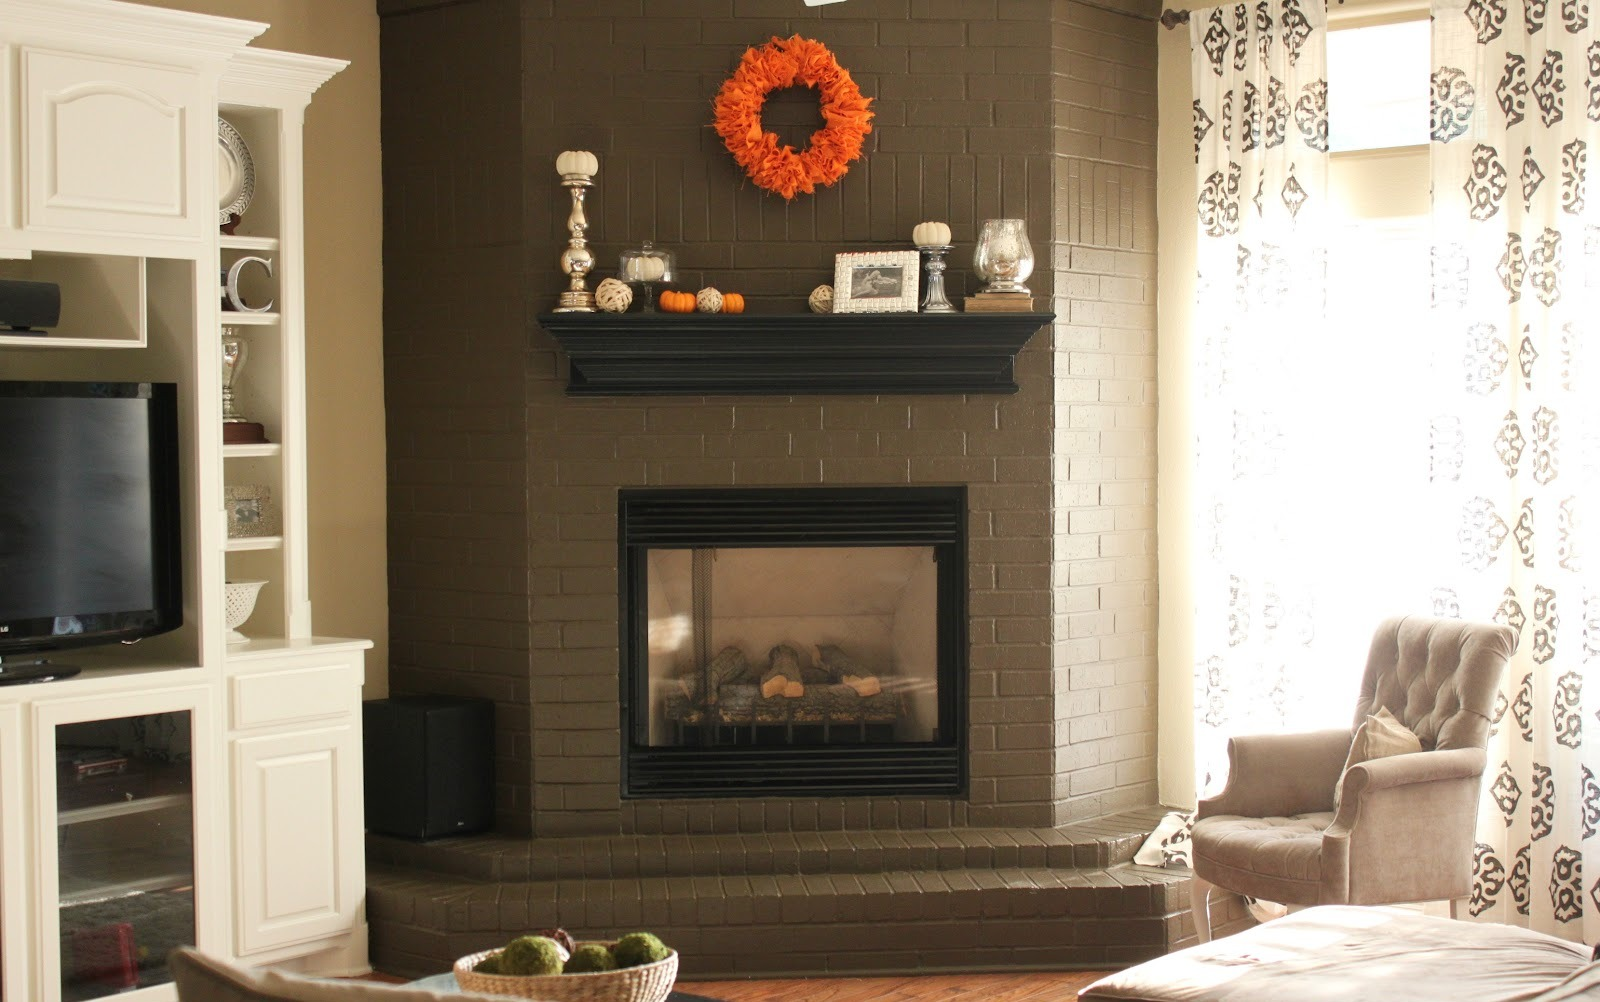 stunning living room with black fireplace and classic fireplace mantel decor on grey brick wall - Black Fireplace Mantels